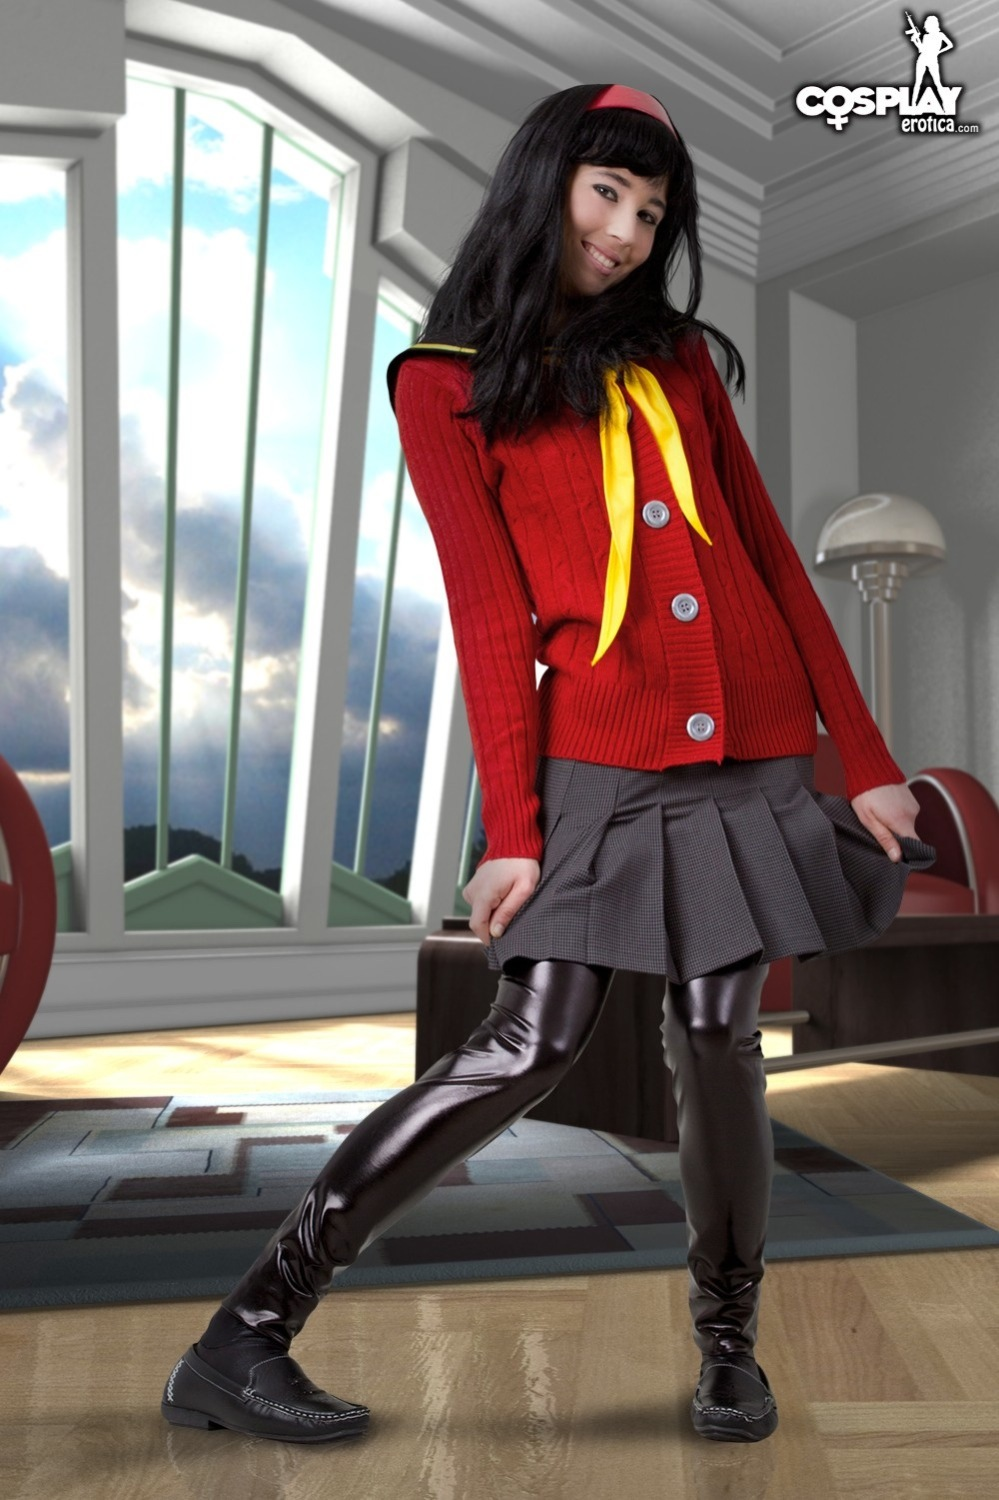 cosplayerotica stacy  Stacy Social Link Cosplay, Stacy Social Link Cosplay ...